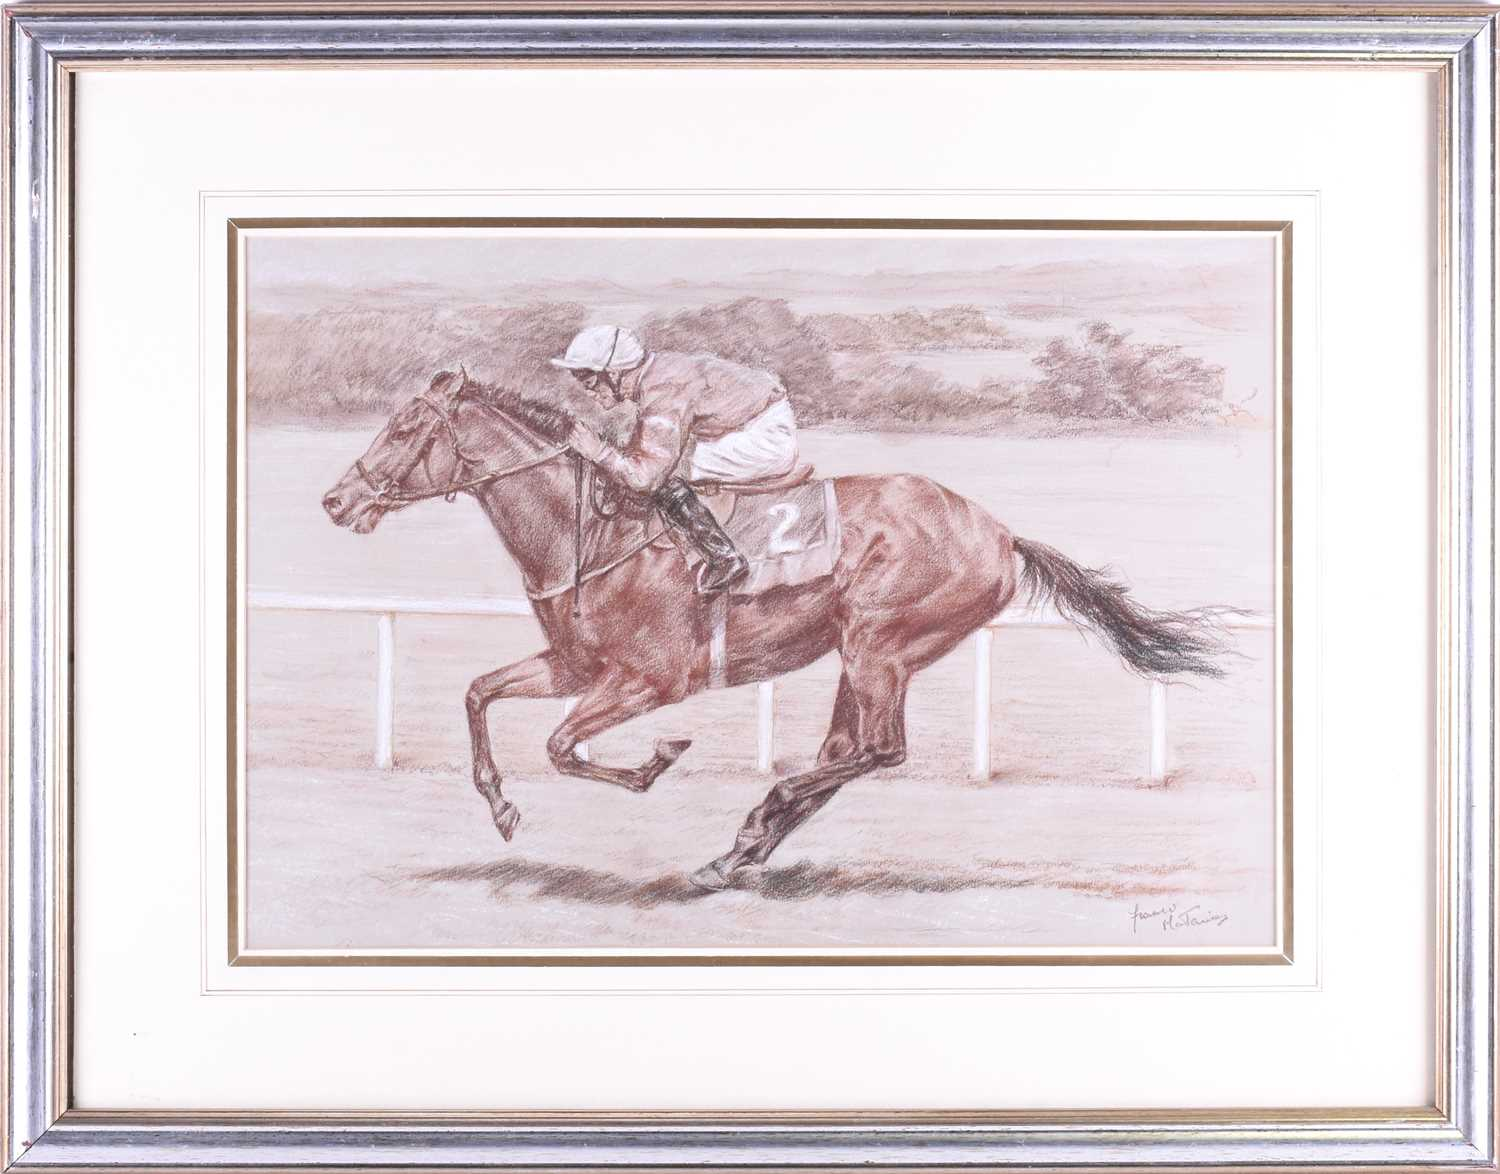 Lot 36 - Franco Matania (1922-2006) Italian/British, a group of three horseracing related pictures of '